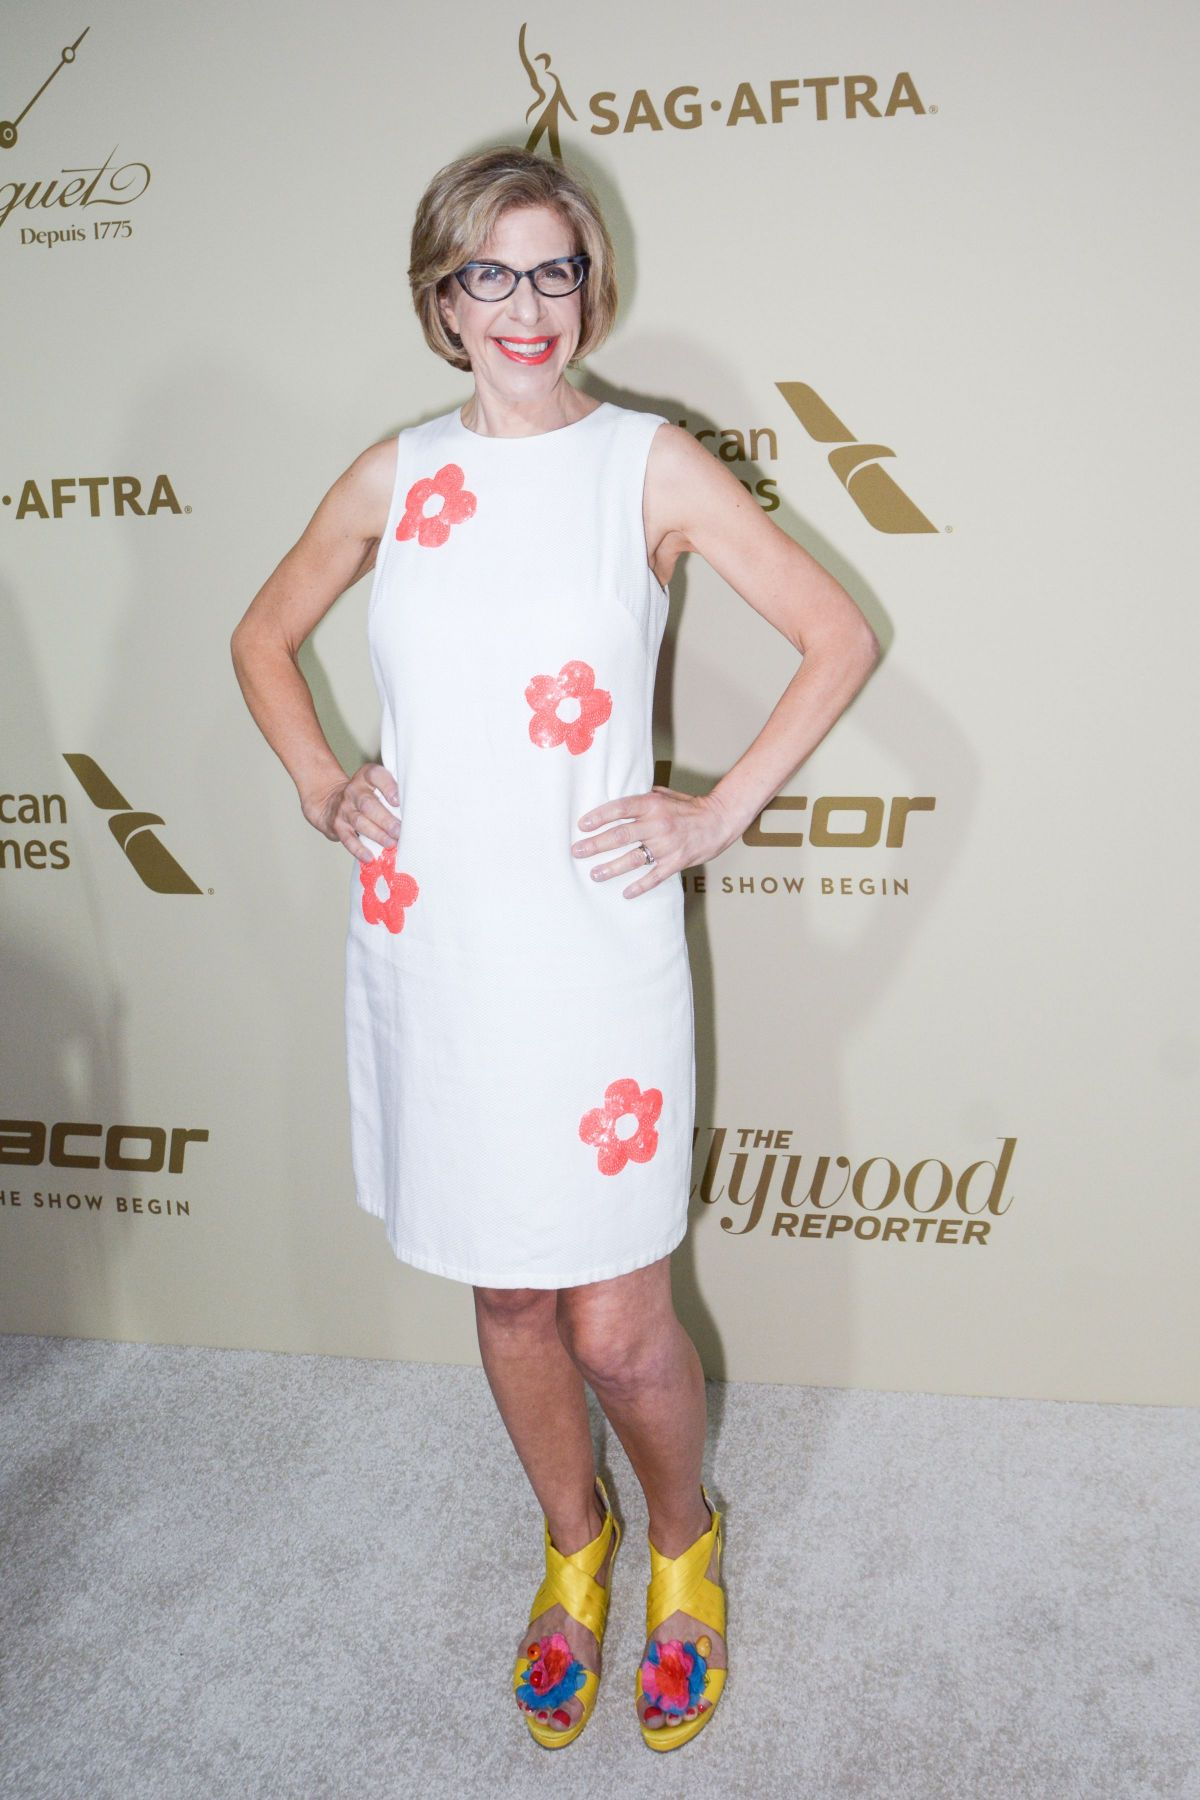 JACKIE HOFFMAN at Hollywood Reporter and Sag-aftra Nominees Night in Beverly Hills 09/14/2017